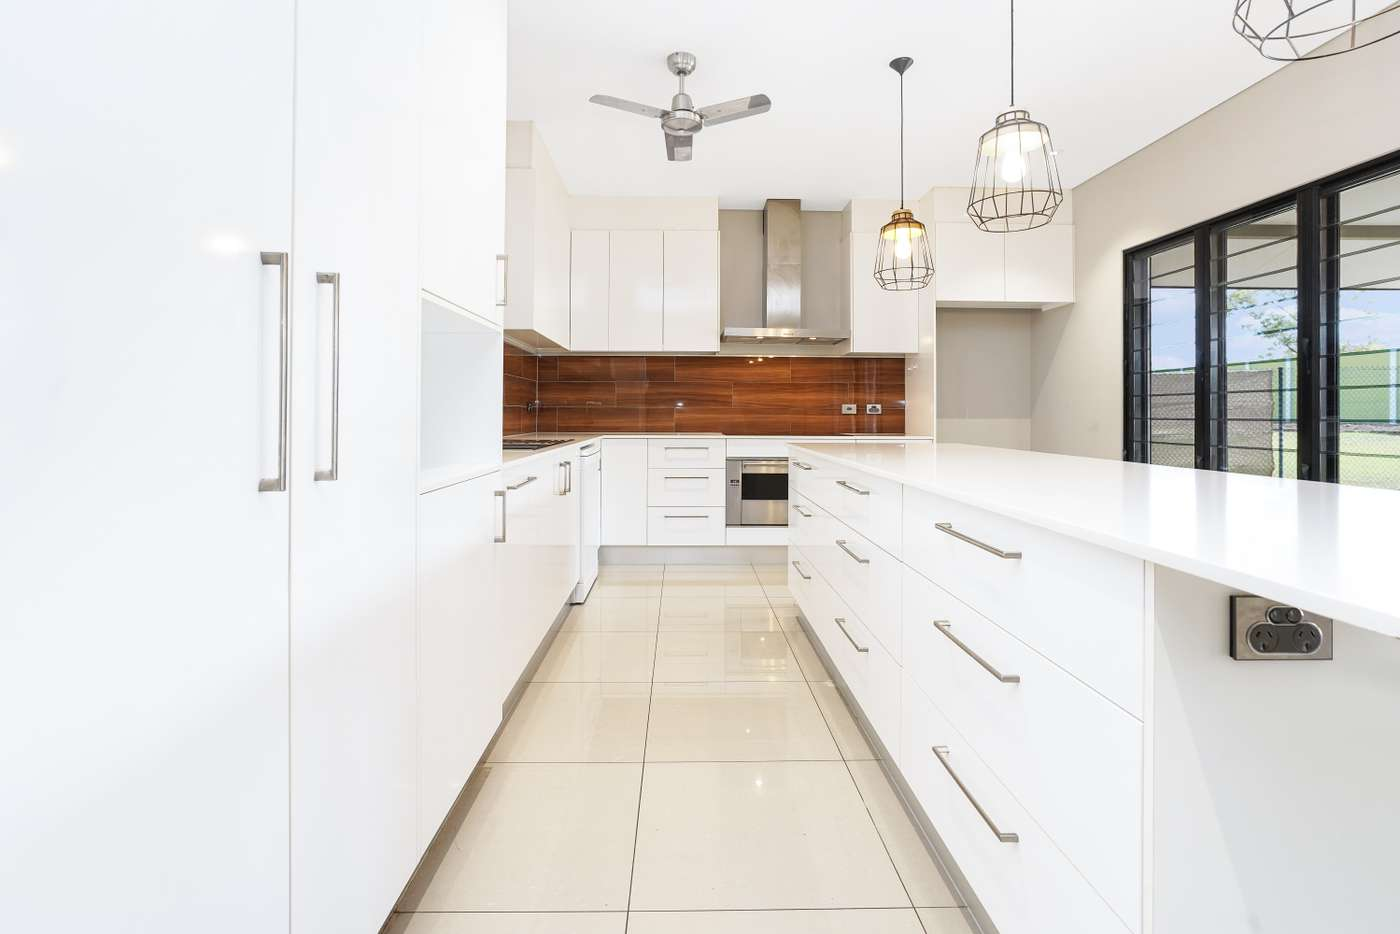 Sixth view of Homely house listing, 90 Lind Road, Johnston NT 832